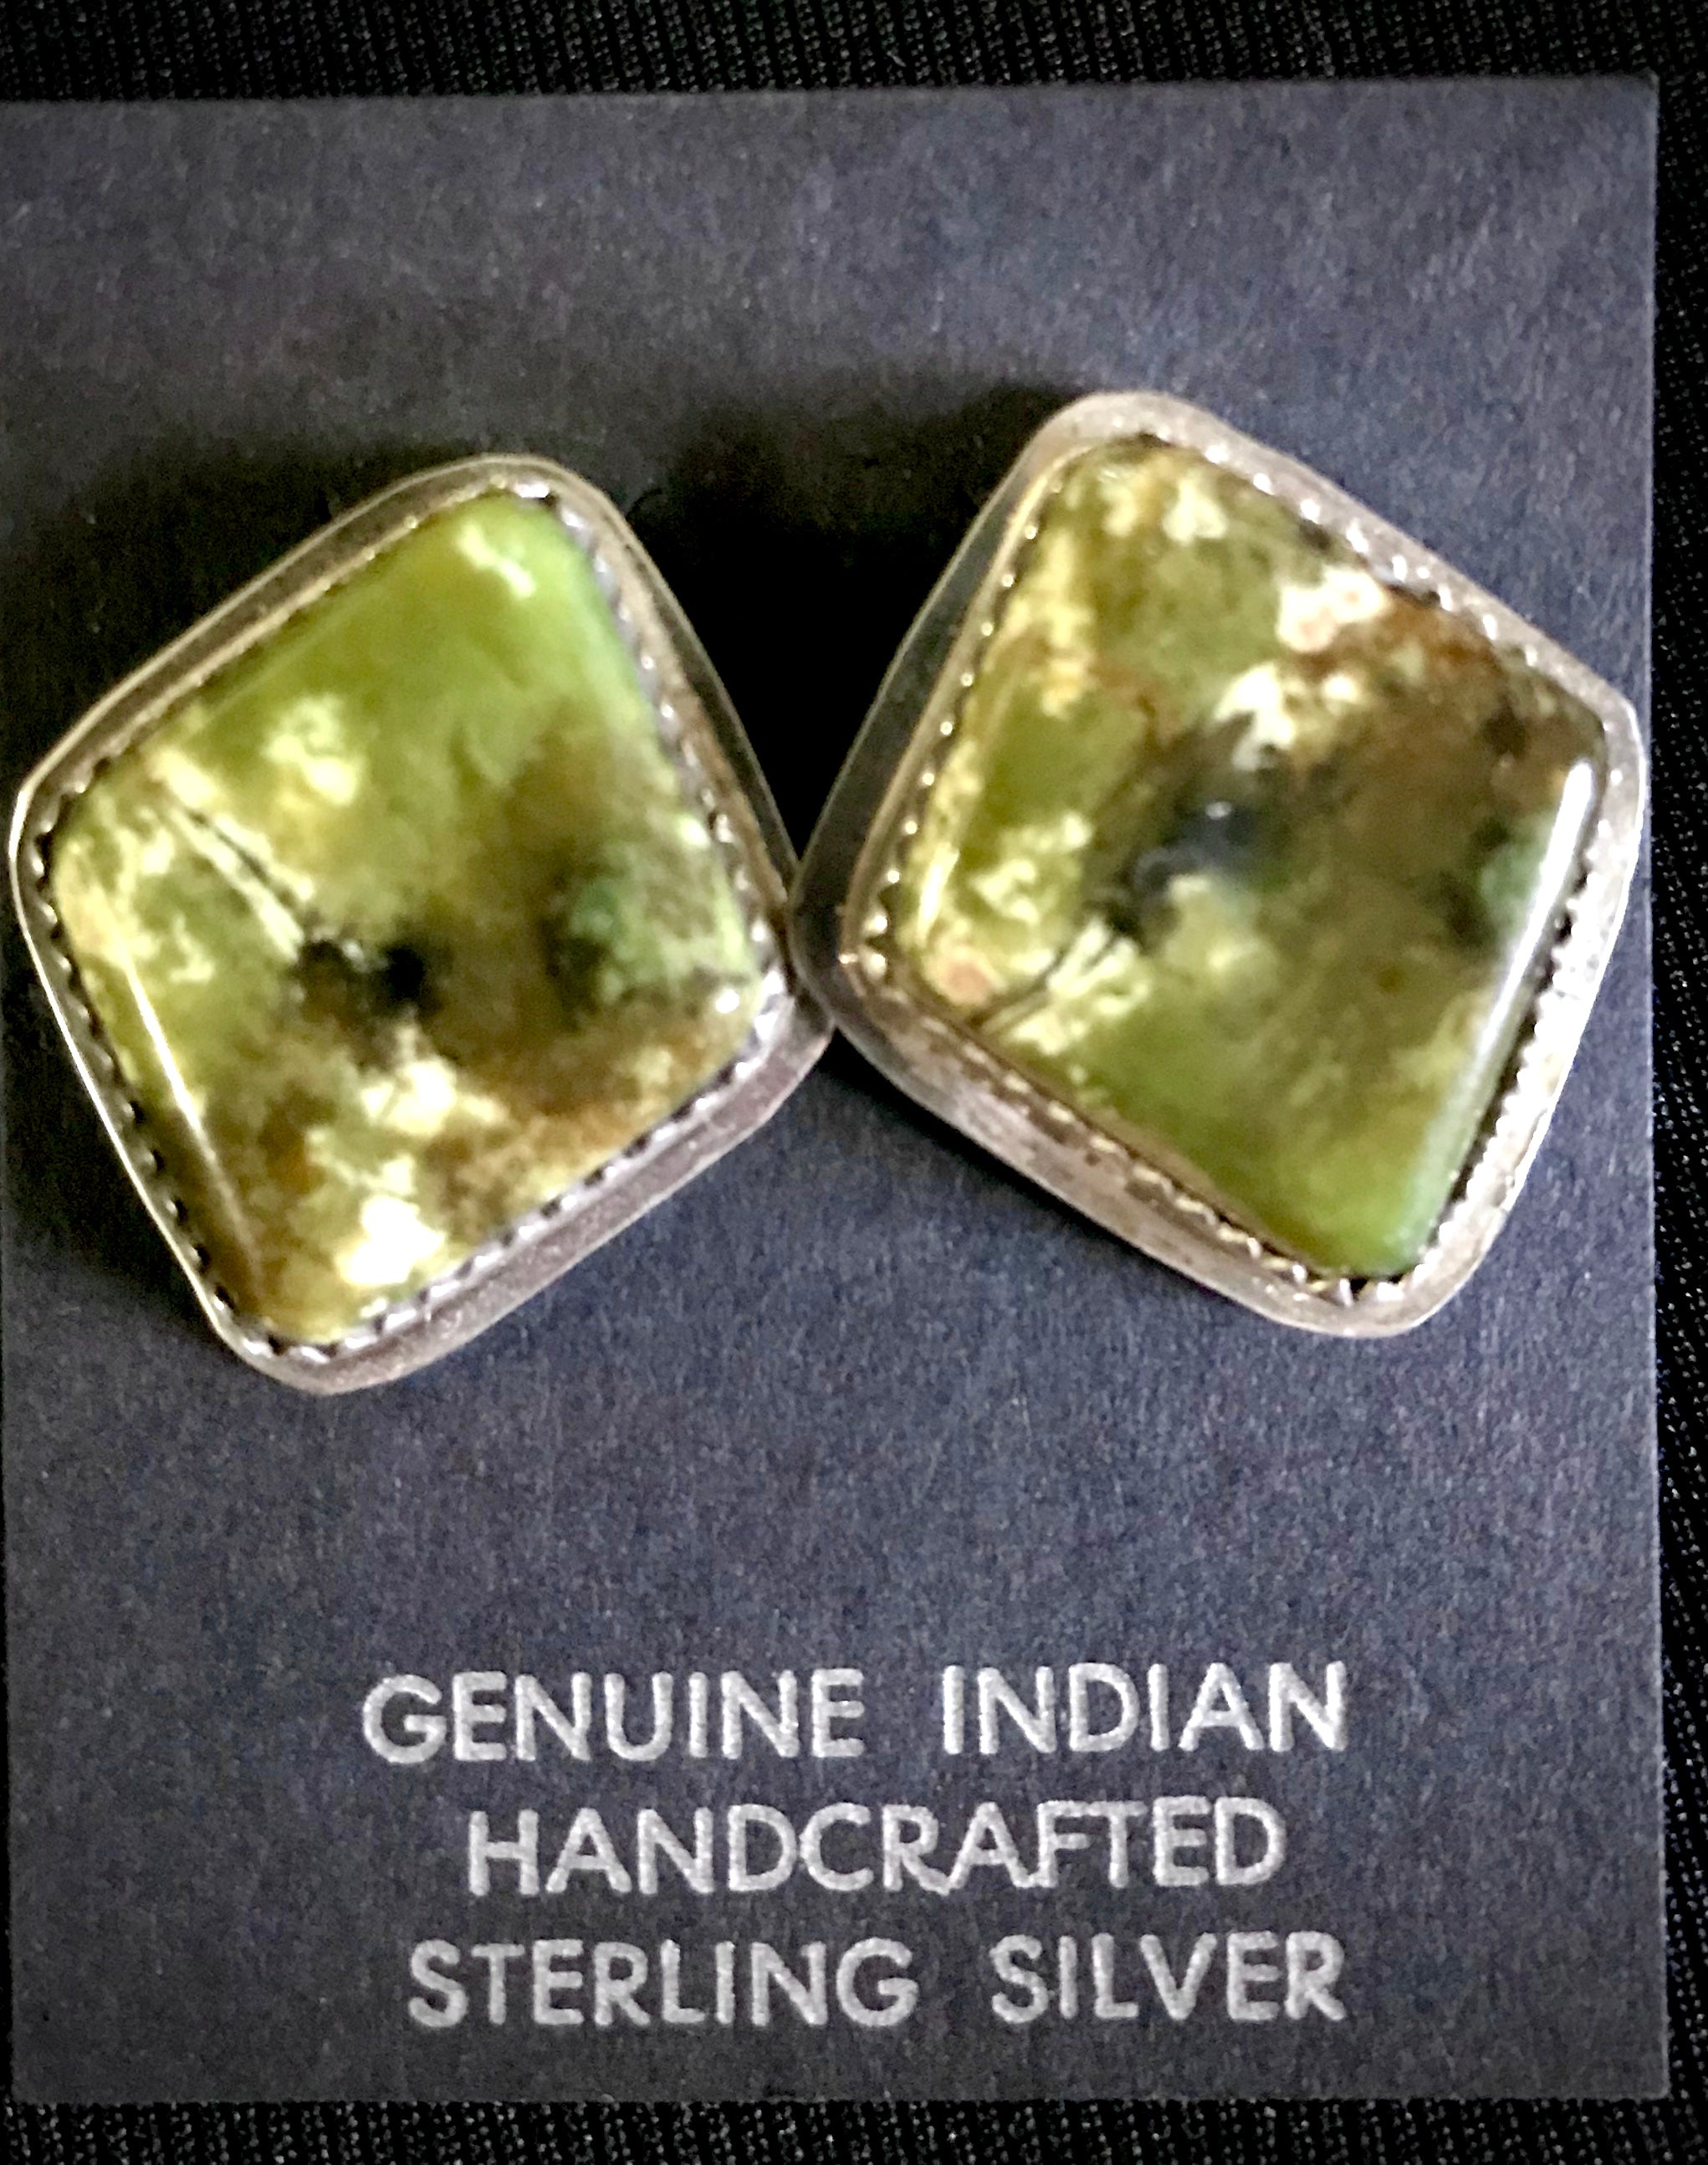 Native American Handcrafted sterling silver earrings in genuine stones.